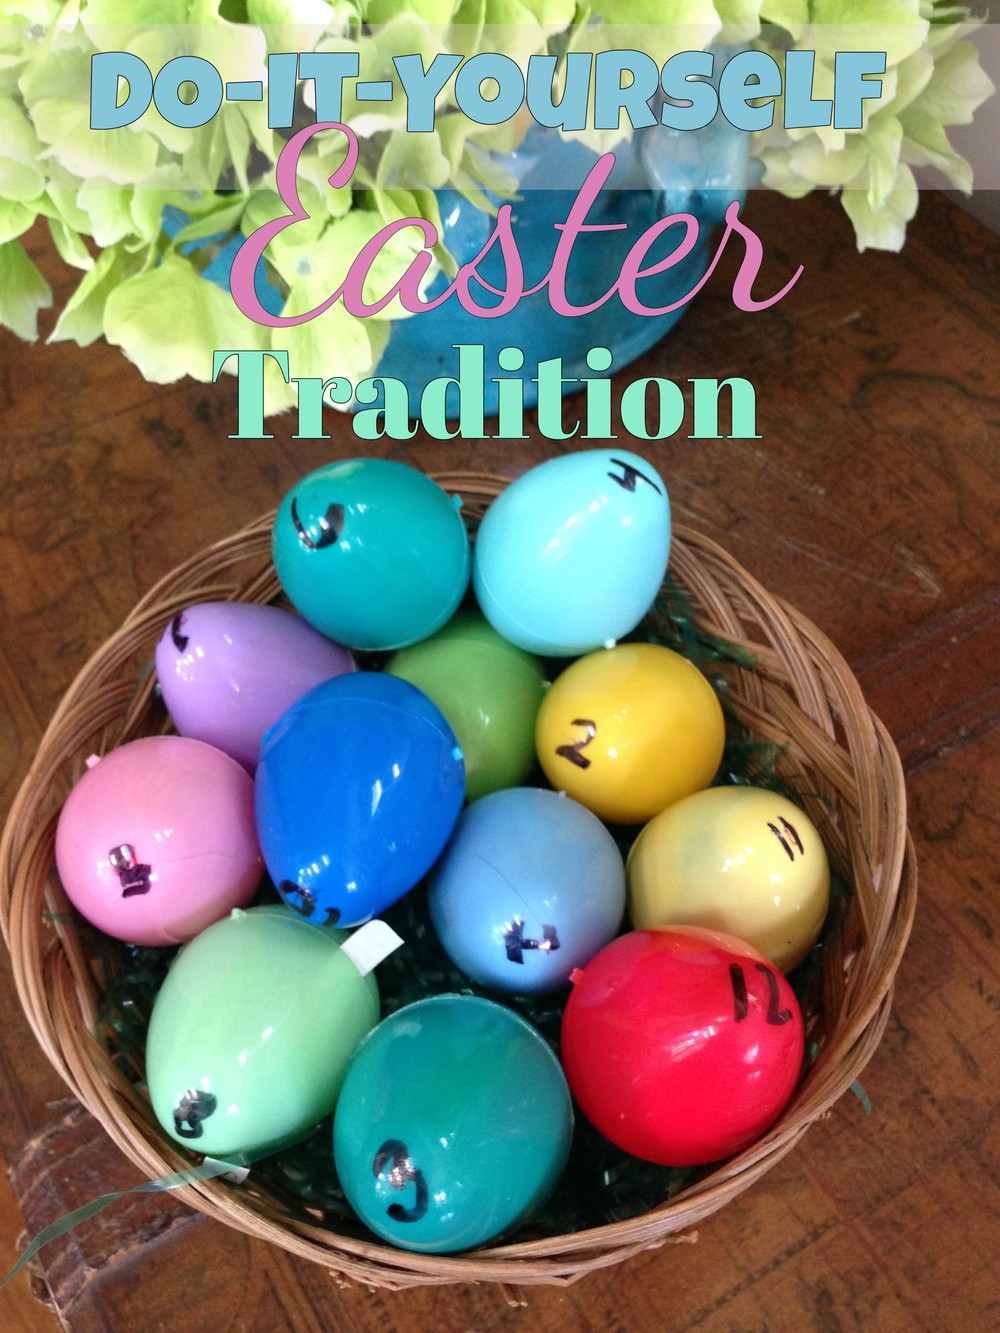 Do it yourself easter tradition do it yourself easter tradition solutioingenieria Choice Image